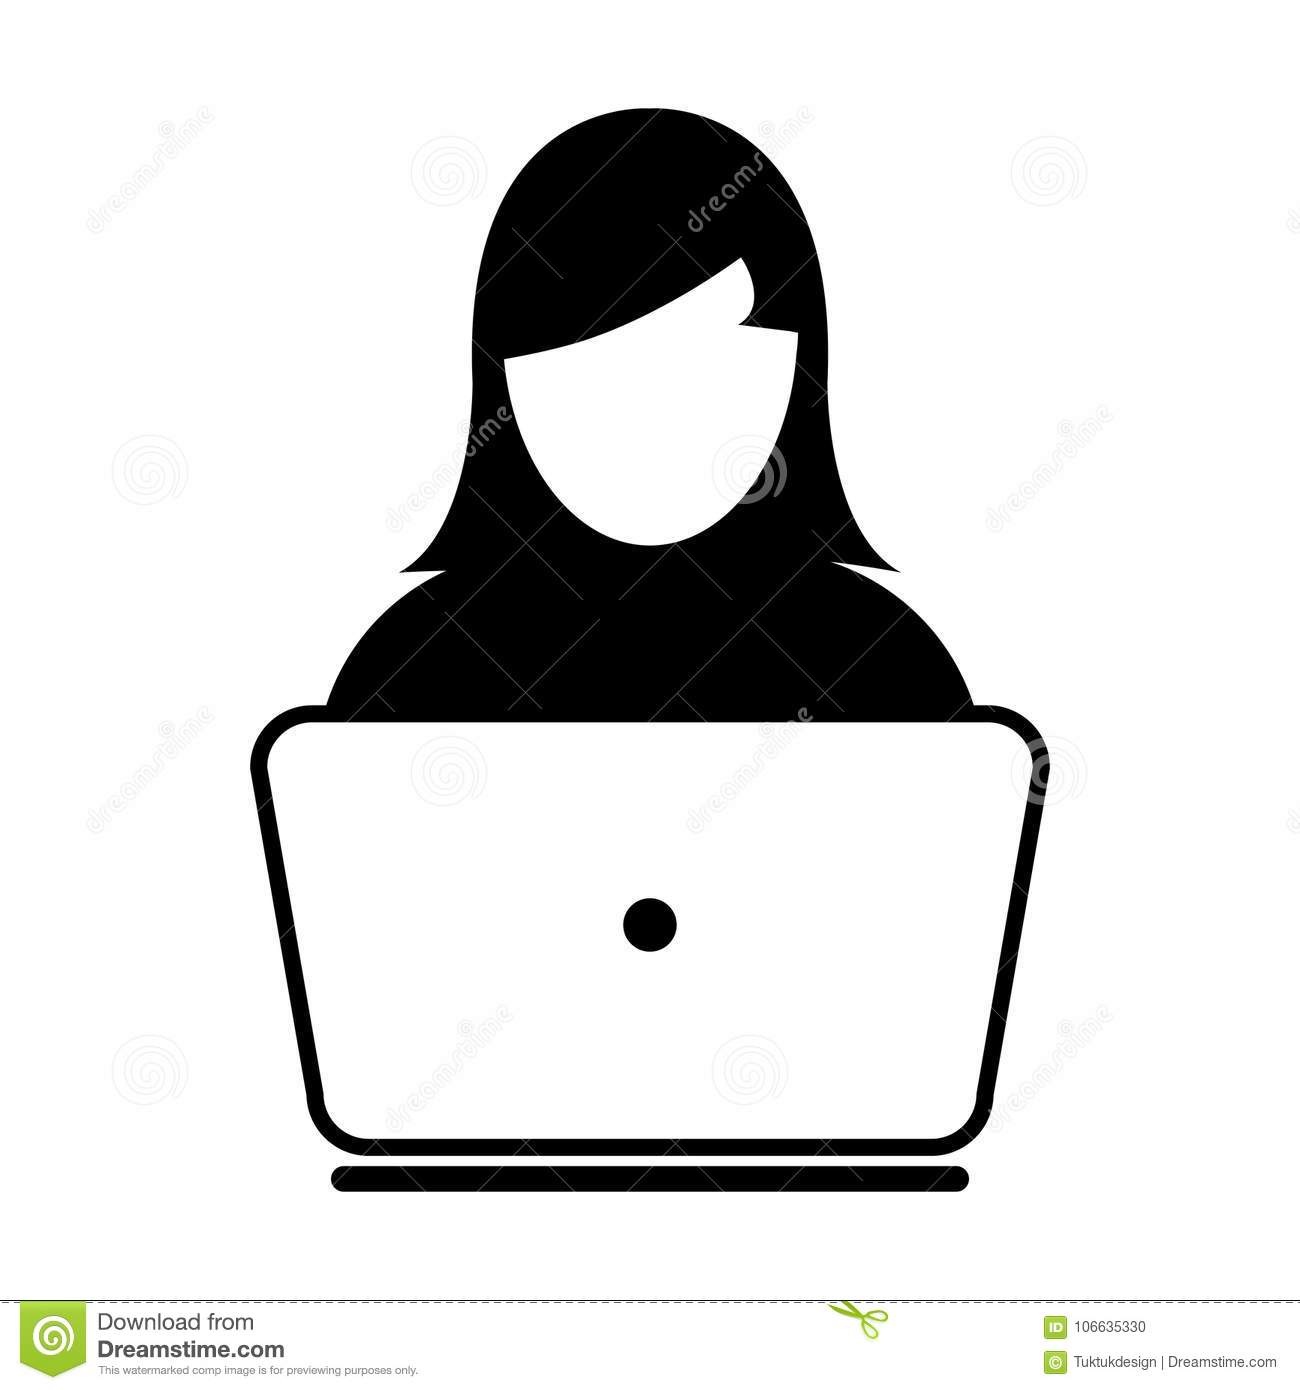 e7fc290bbcd2b User Icon Vector With Laptop Computer Female Person Profile Avatar for  Business and Online Communication Network in Glyph Pictogram Symbol  illustration